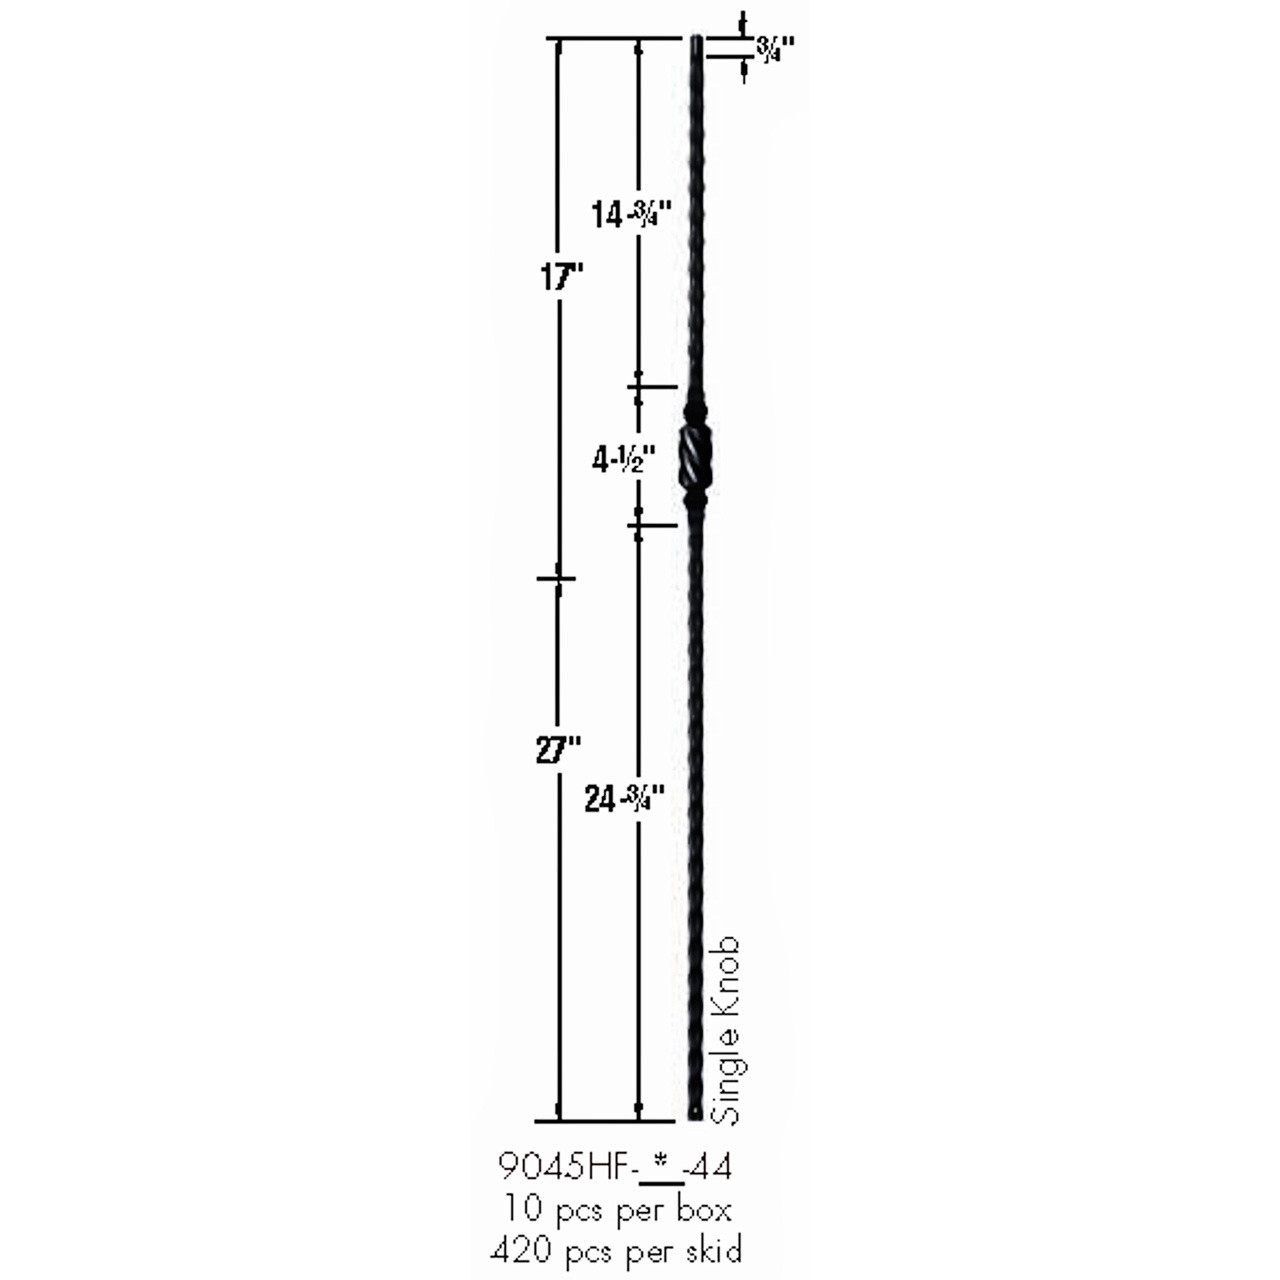 9045HF Single Knob with Hammered Face Baluster Dimensional Information